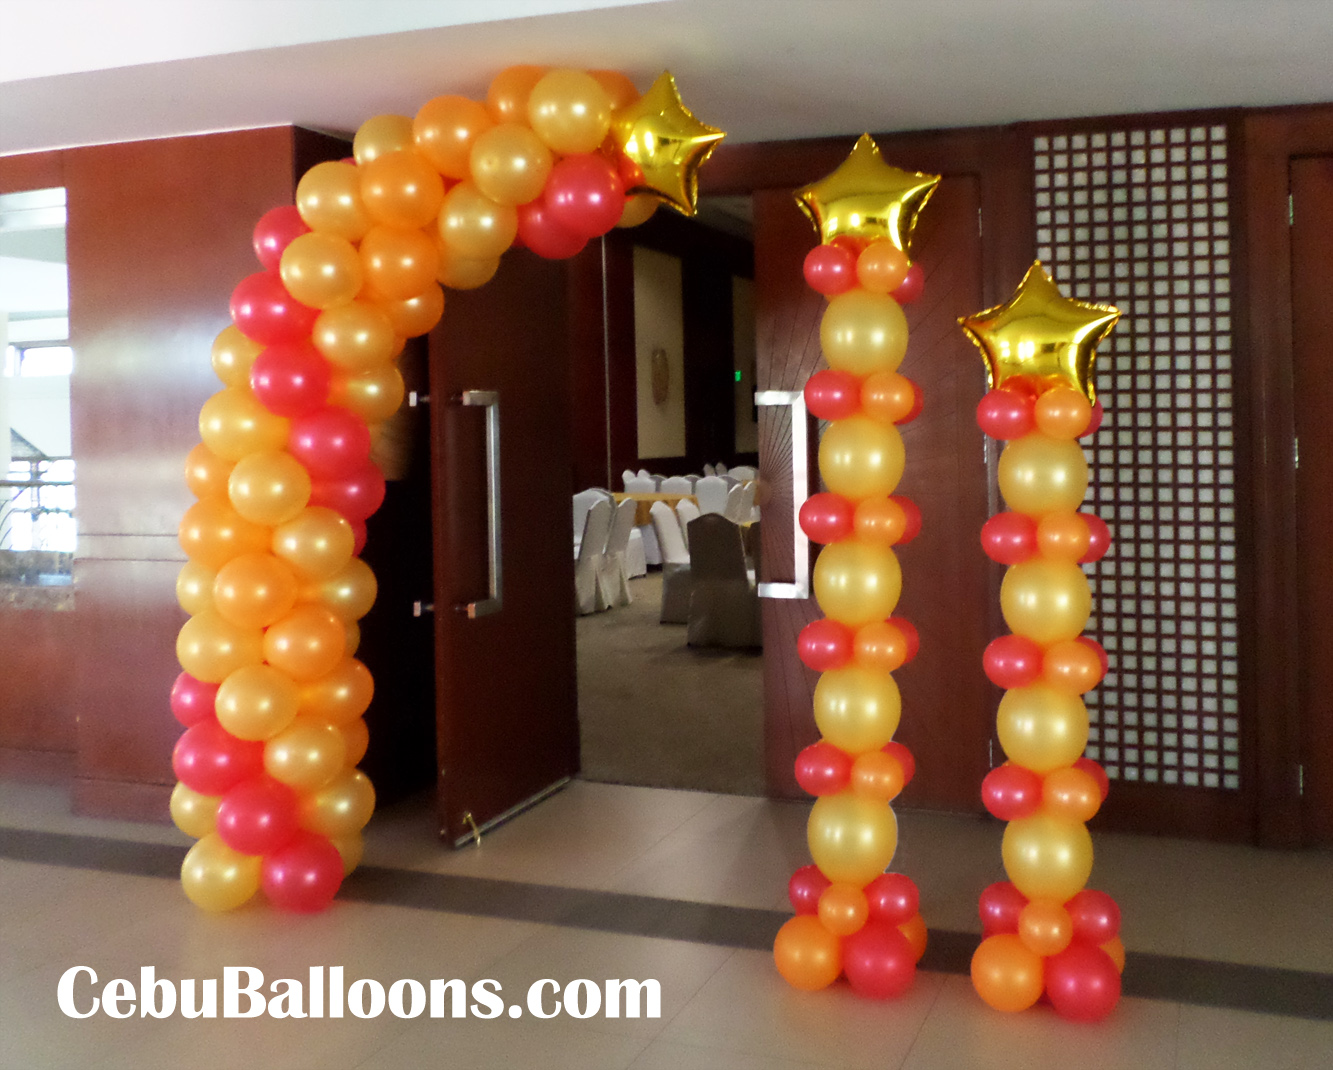 1950s 60s cebu balloons and party supplies for 75th birthday party decoration ideas